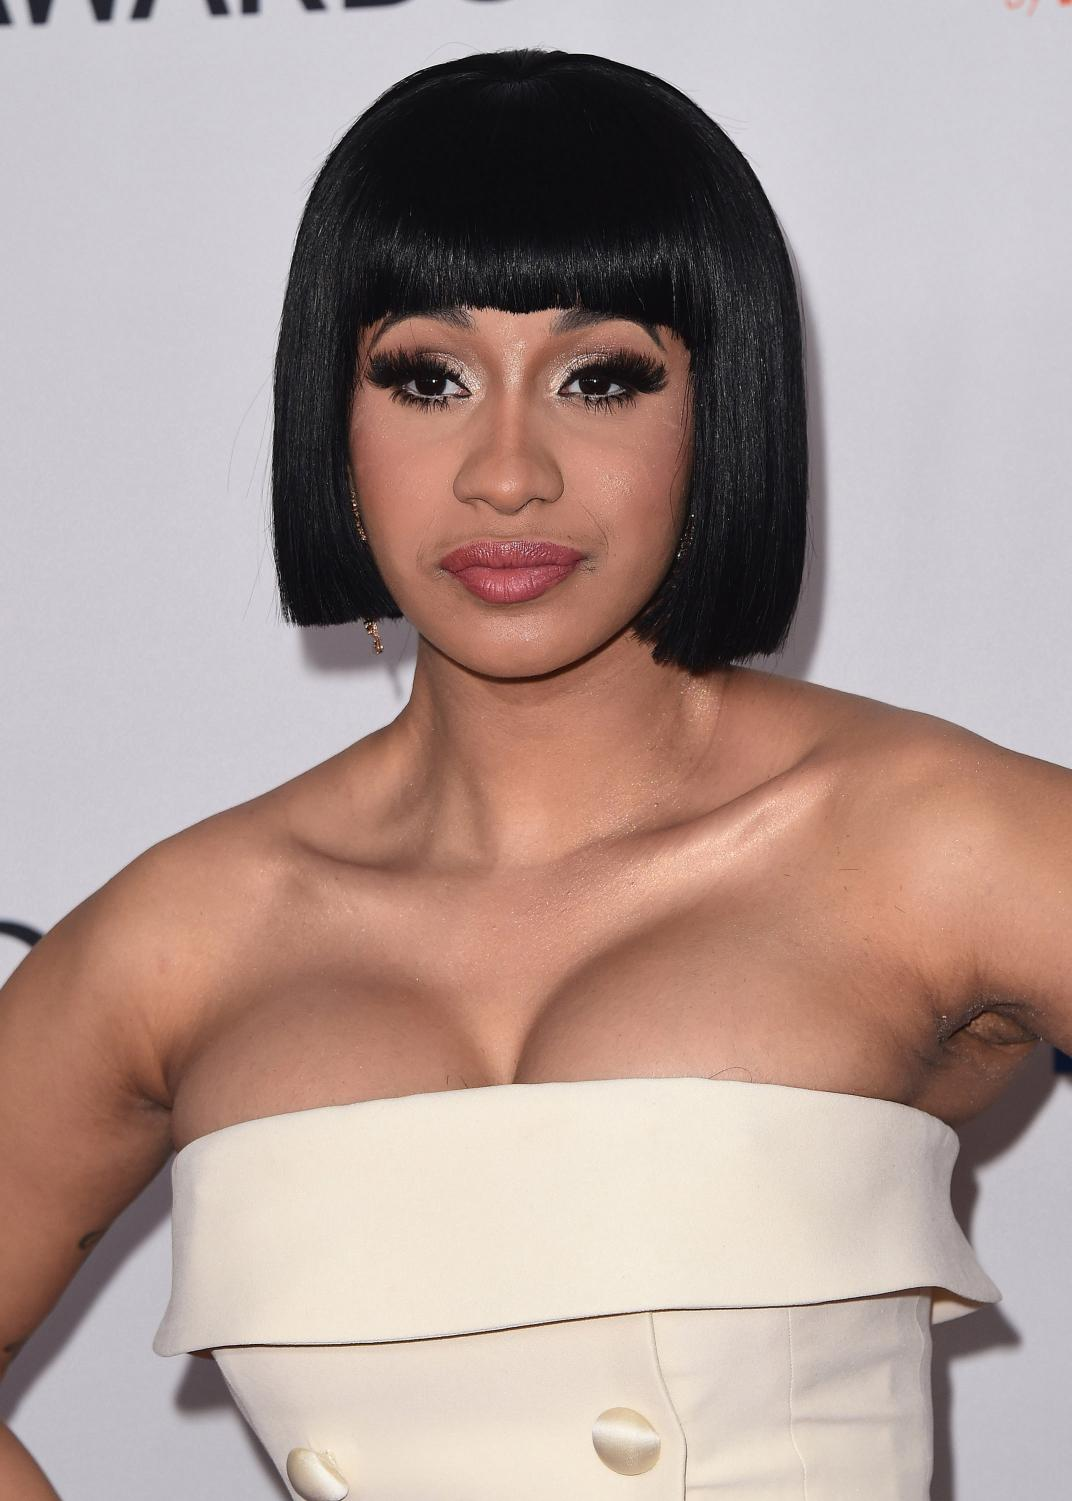 Cardi B posing at the 2018 Clive Davis Pre-Grammy Gala. Photo Credit: MCT Campus